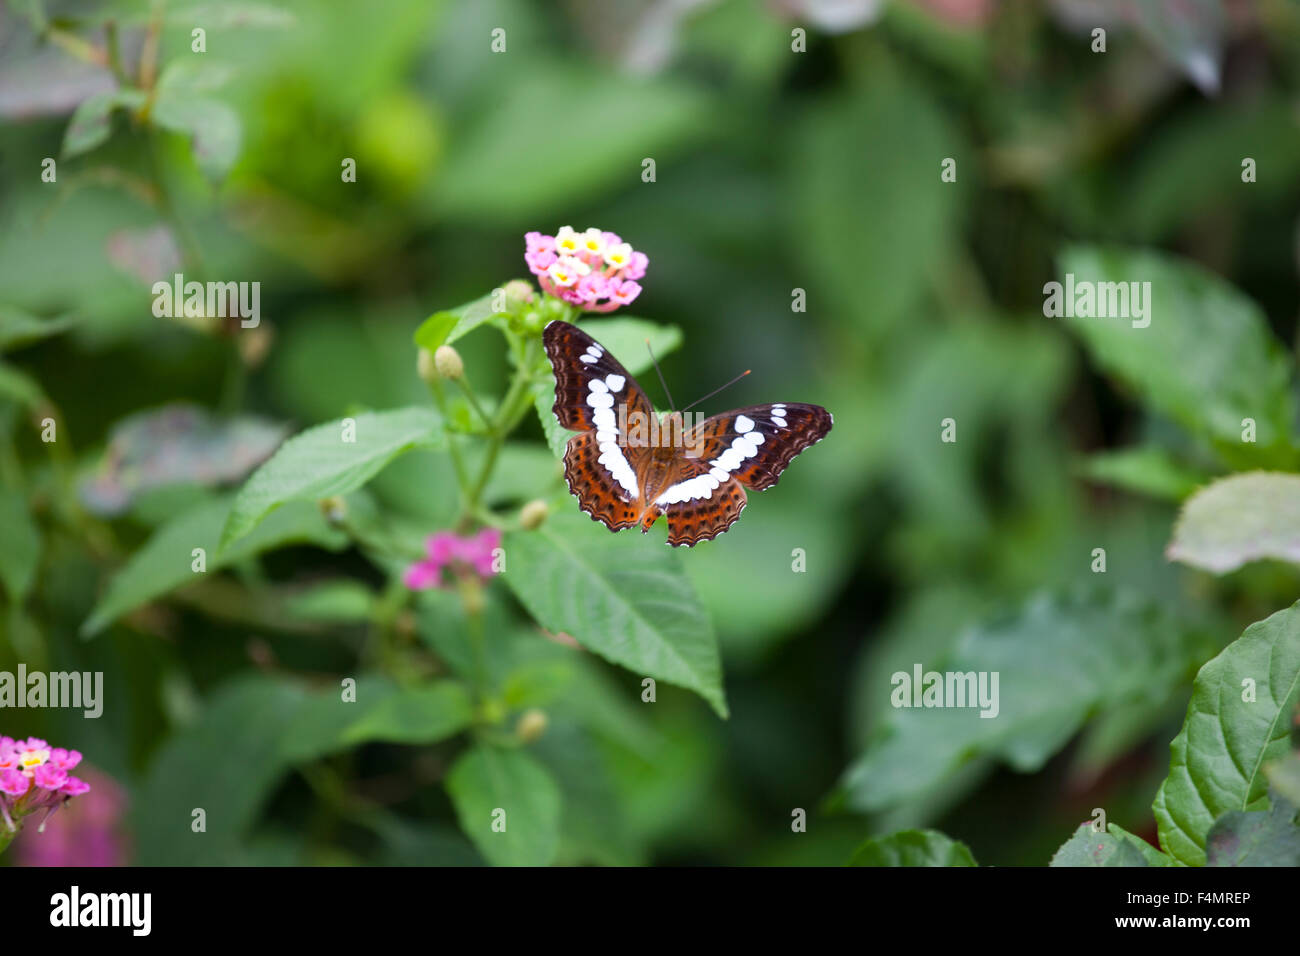 Butterfly in Georgetown, Malaysia - Stock Image